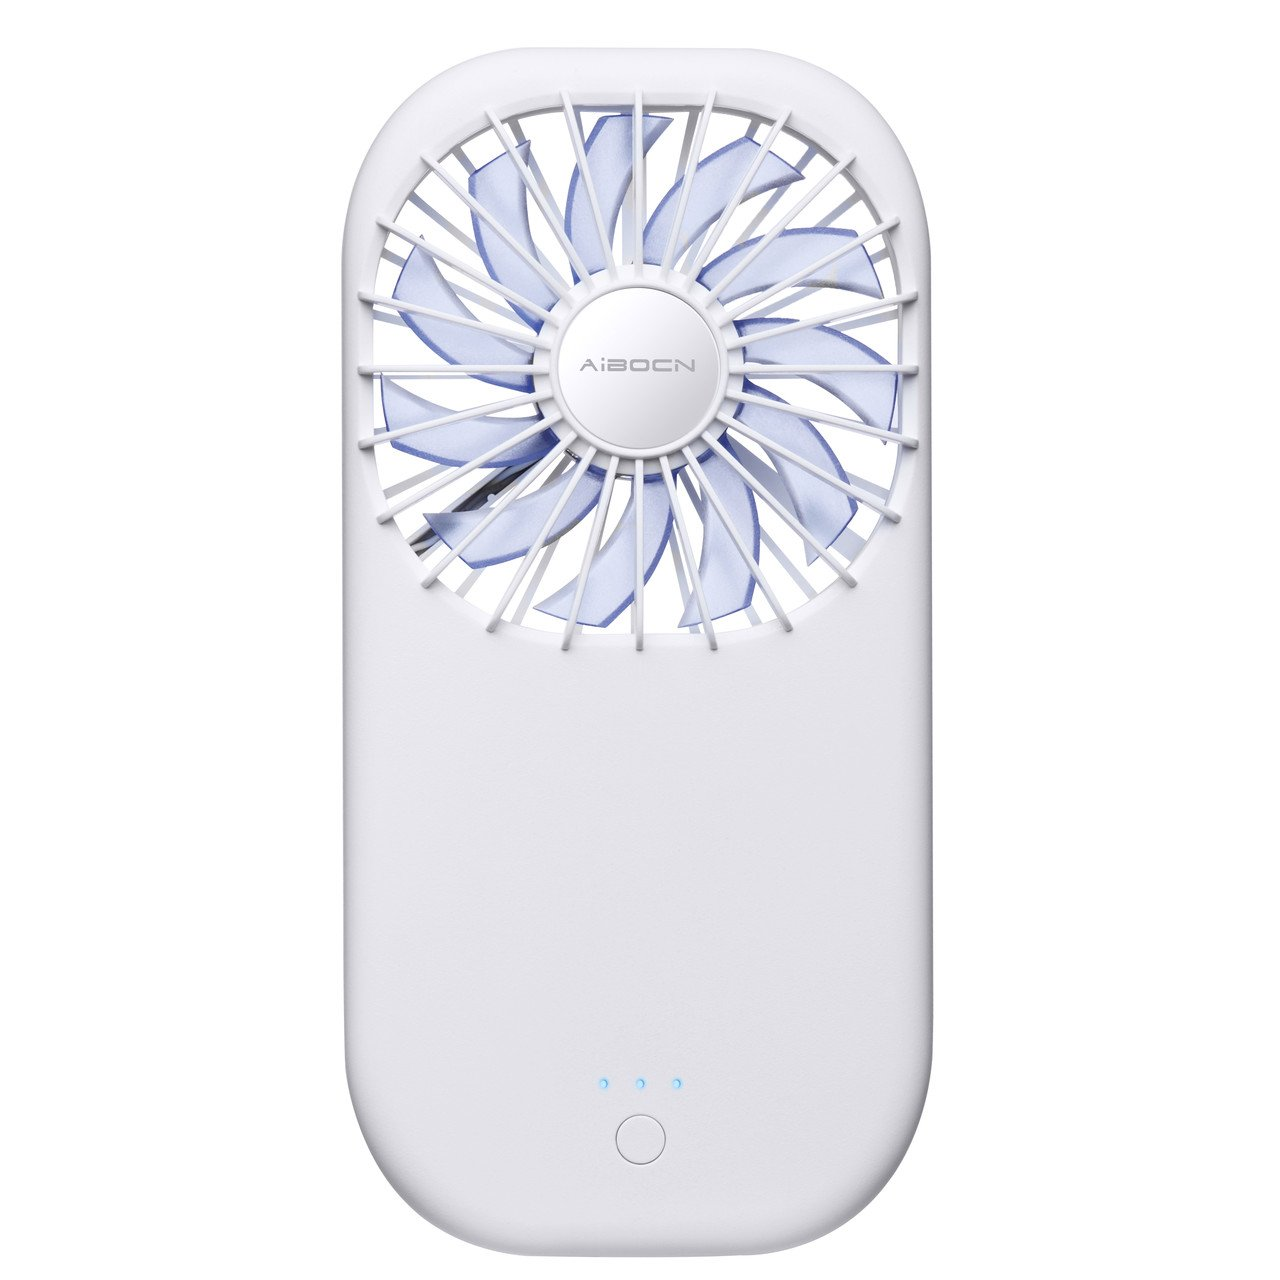 Aibocn Mini Handheld Fan with 3500mAh Rechargeable Power Bank Funtion Cooling Fan for Summer Travel, Camping and Outdoor by Aibocn (Image #1)